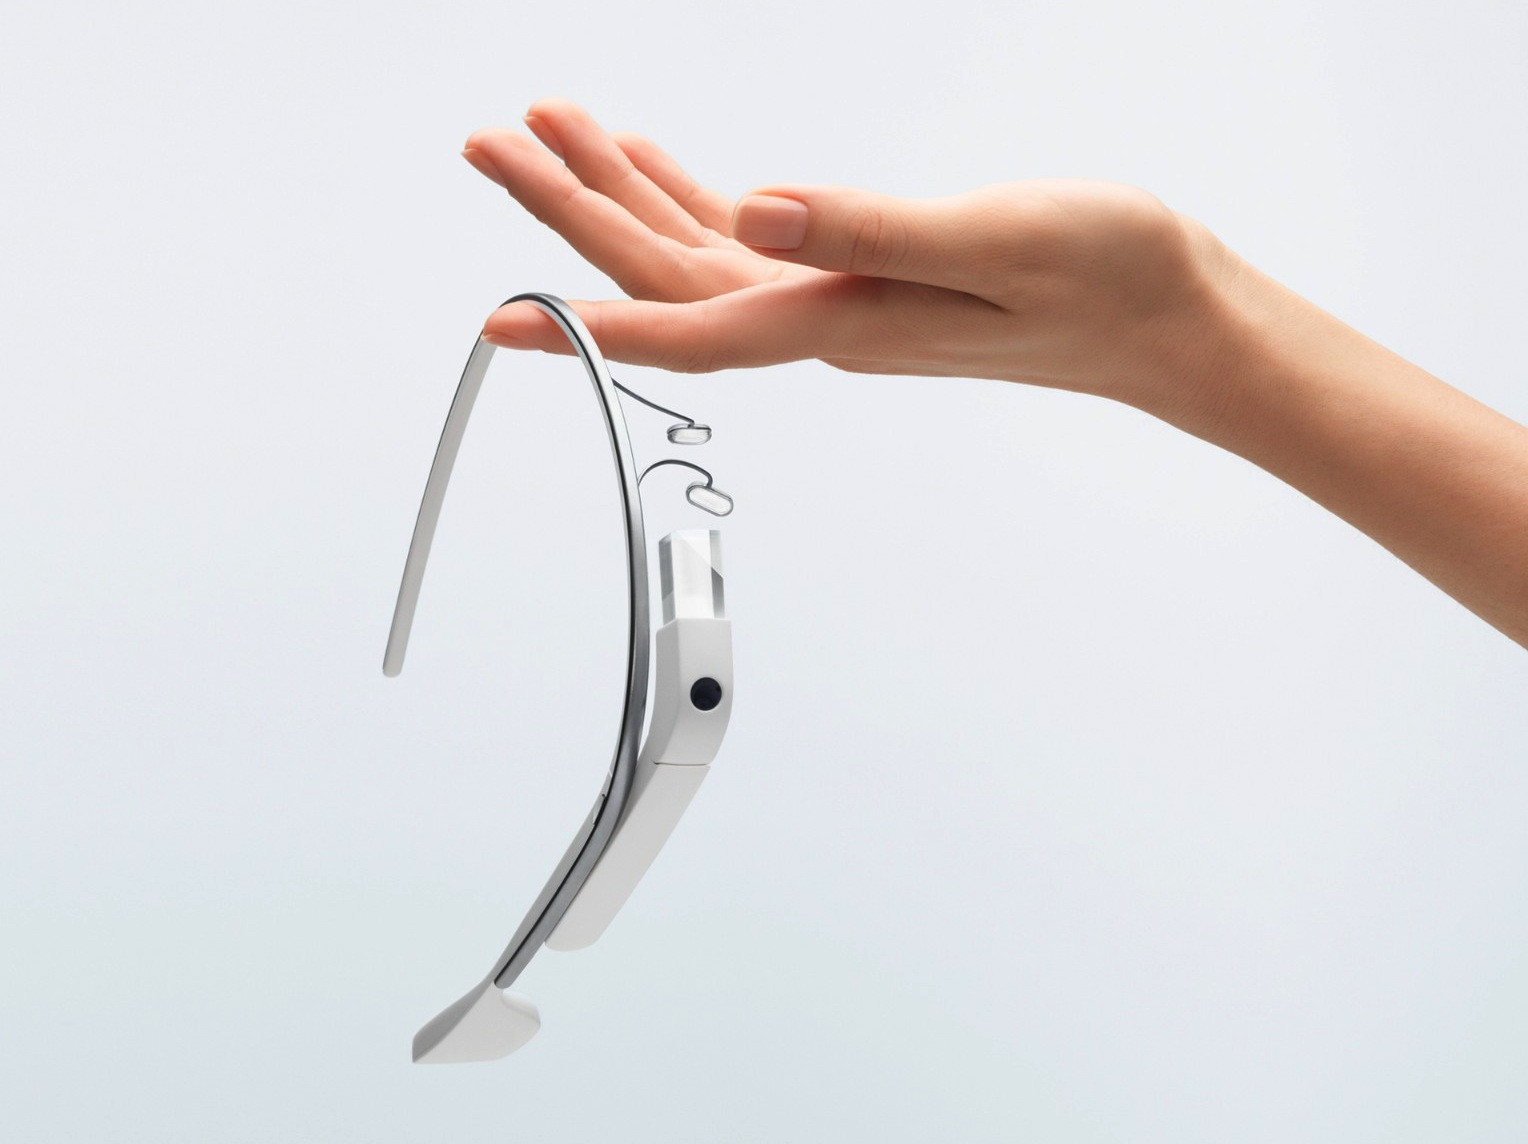 1361367567_google-releases-project-glass-video-capture-and-details-expands-pre-orders-2.jpg